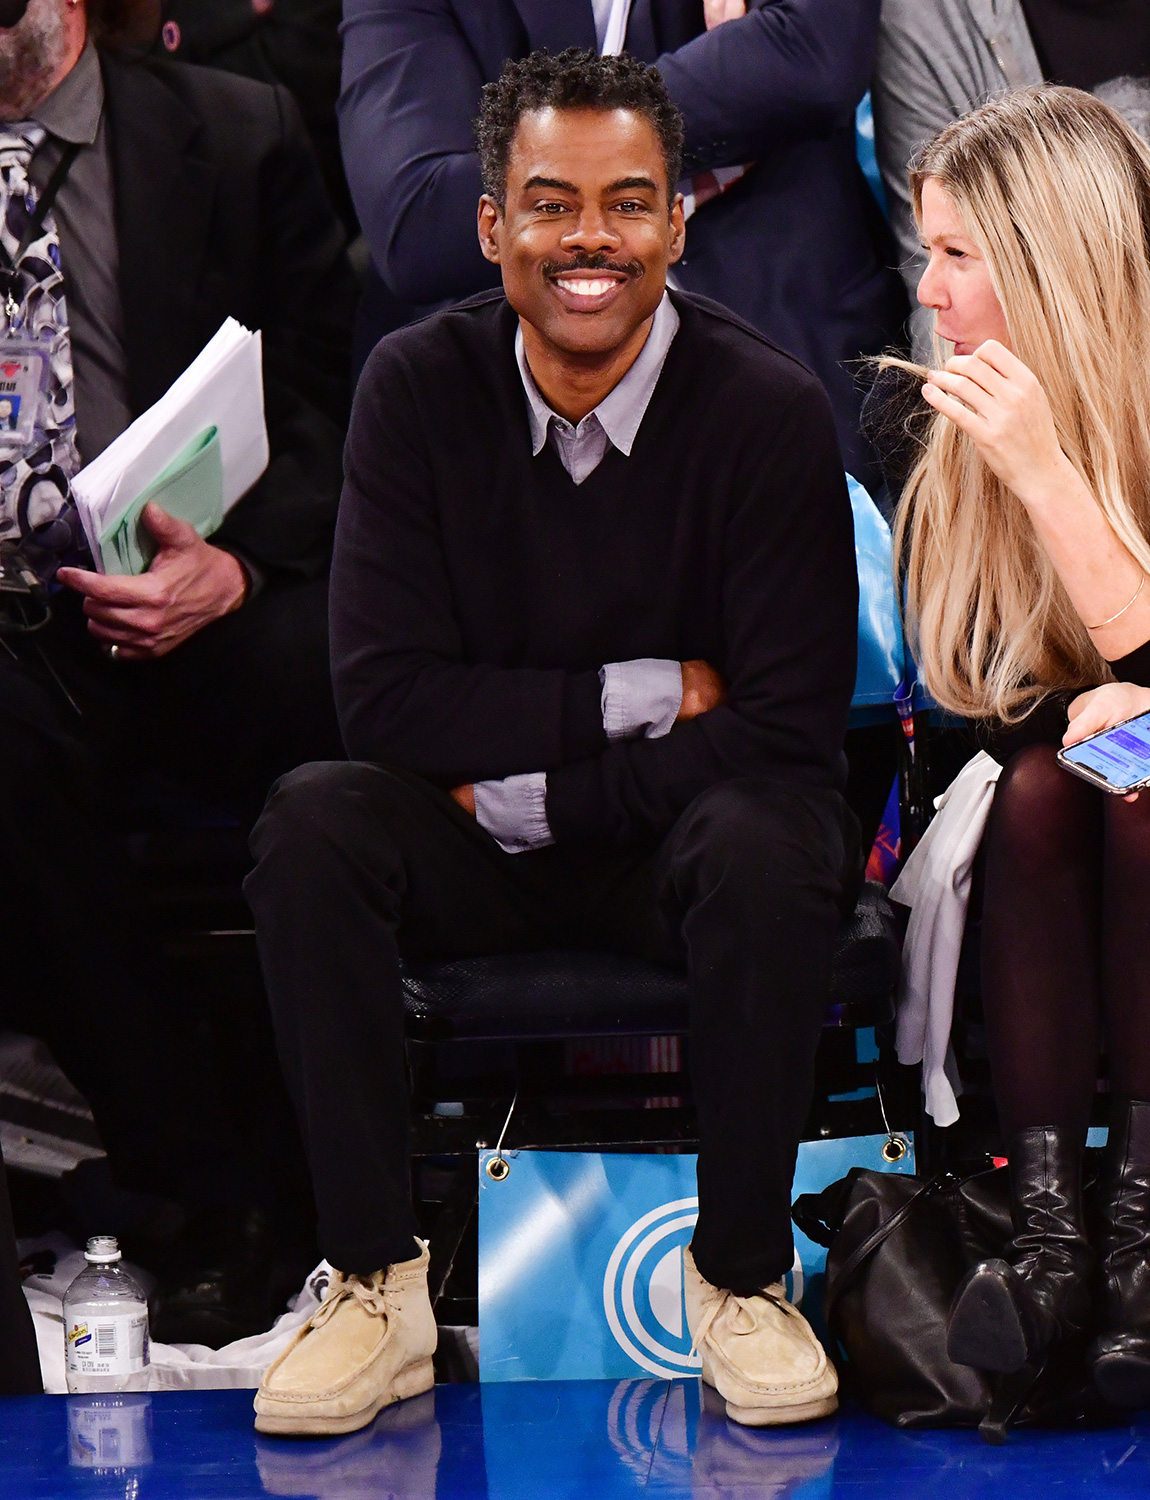 Chris Rock attends Houston Rockets v New York Knicks game at Madison Square Garden on March 2, 2020 in New York City